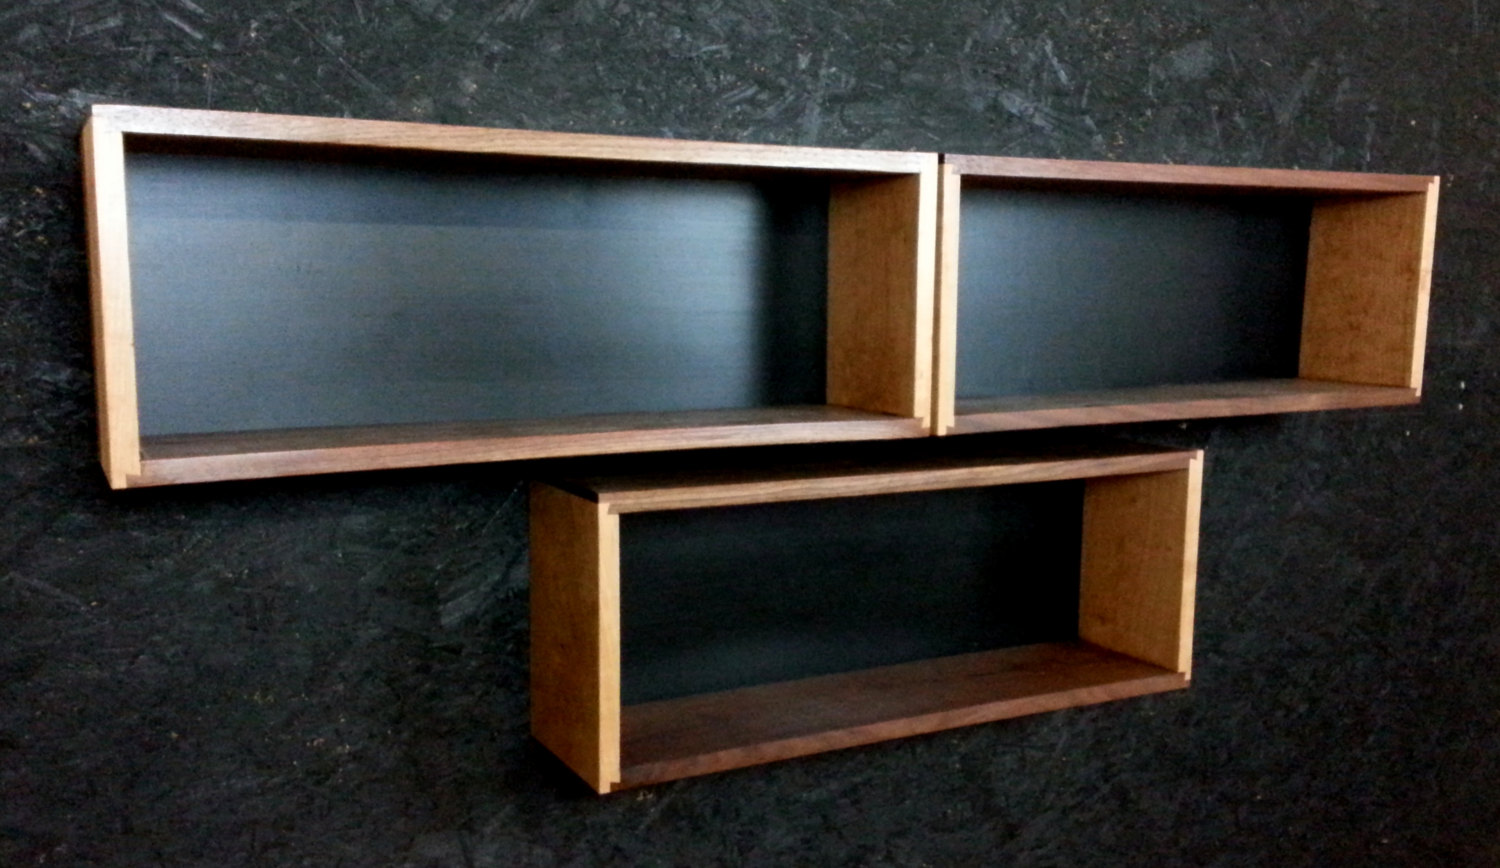 single walnut and cherry floating wall box book case shelf mid etsy fullxfull wood hooks ikea besta bookcase metal hardware white plastic corner silver shelves bedroom hanging